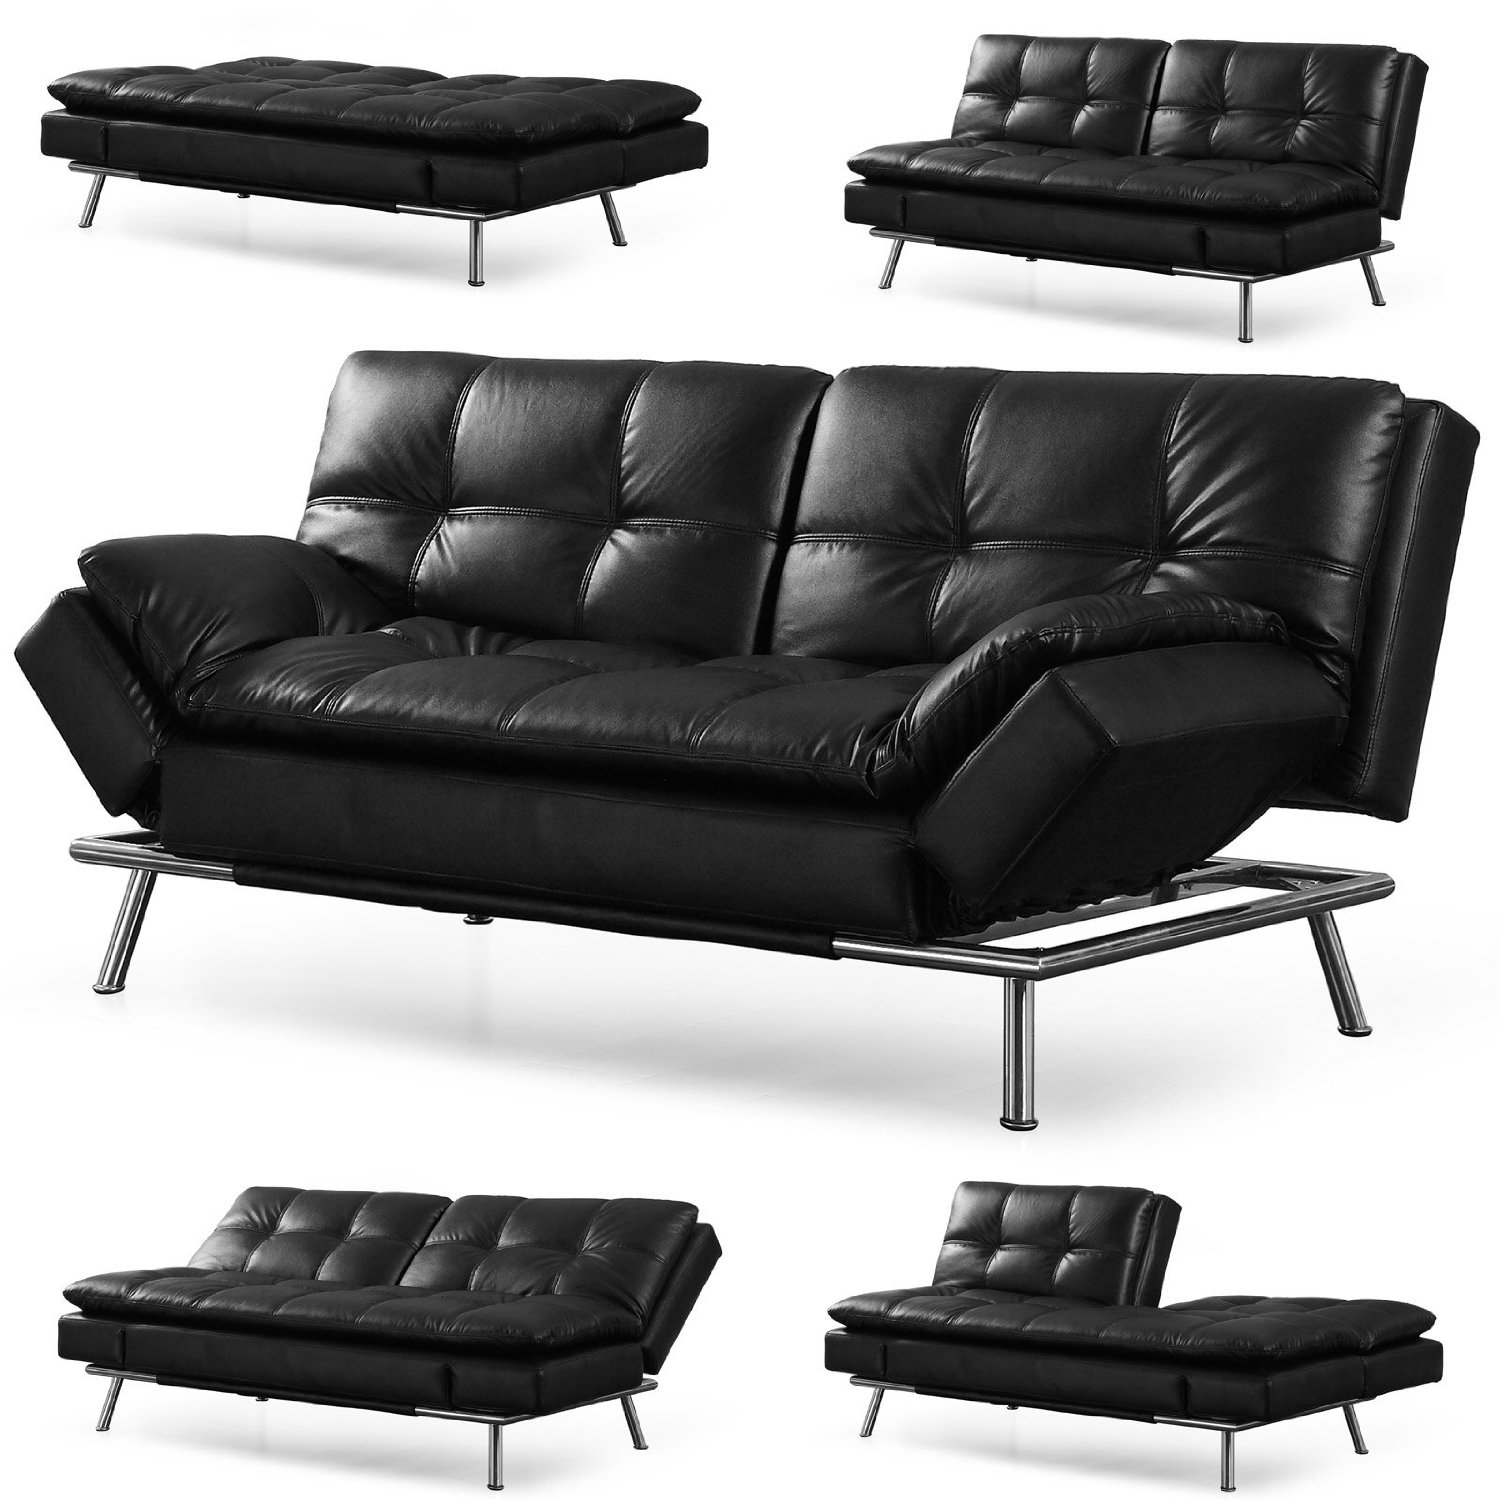 """Lifestyle Solutions CAMDMS3L10DB-T Matrix 79.5"""" Double Cushion 3 Seater Convertible Sofa with Faux Leather Upholstery in Dark"""